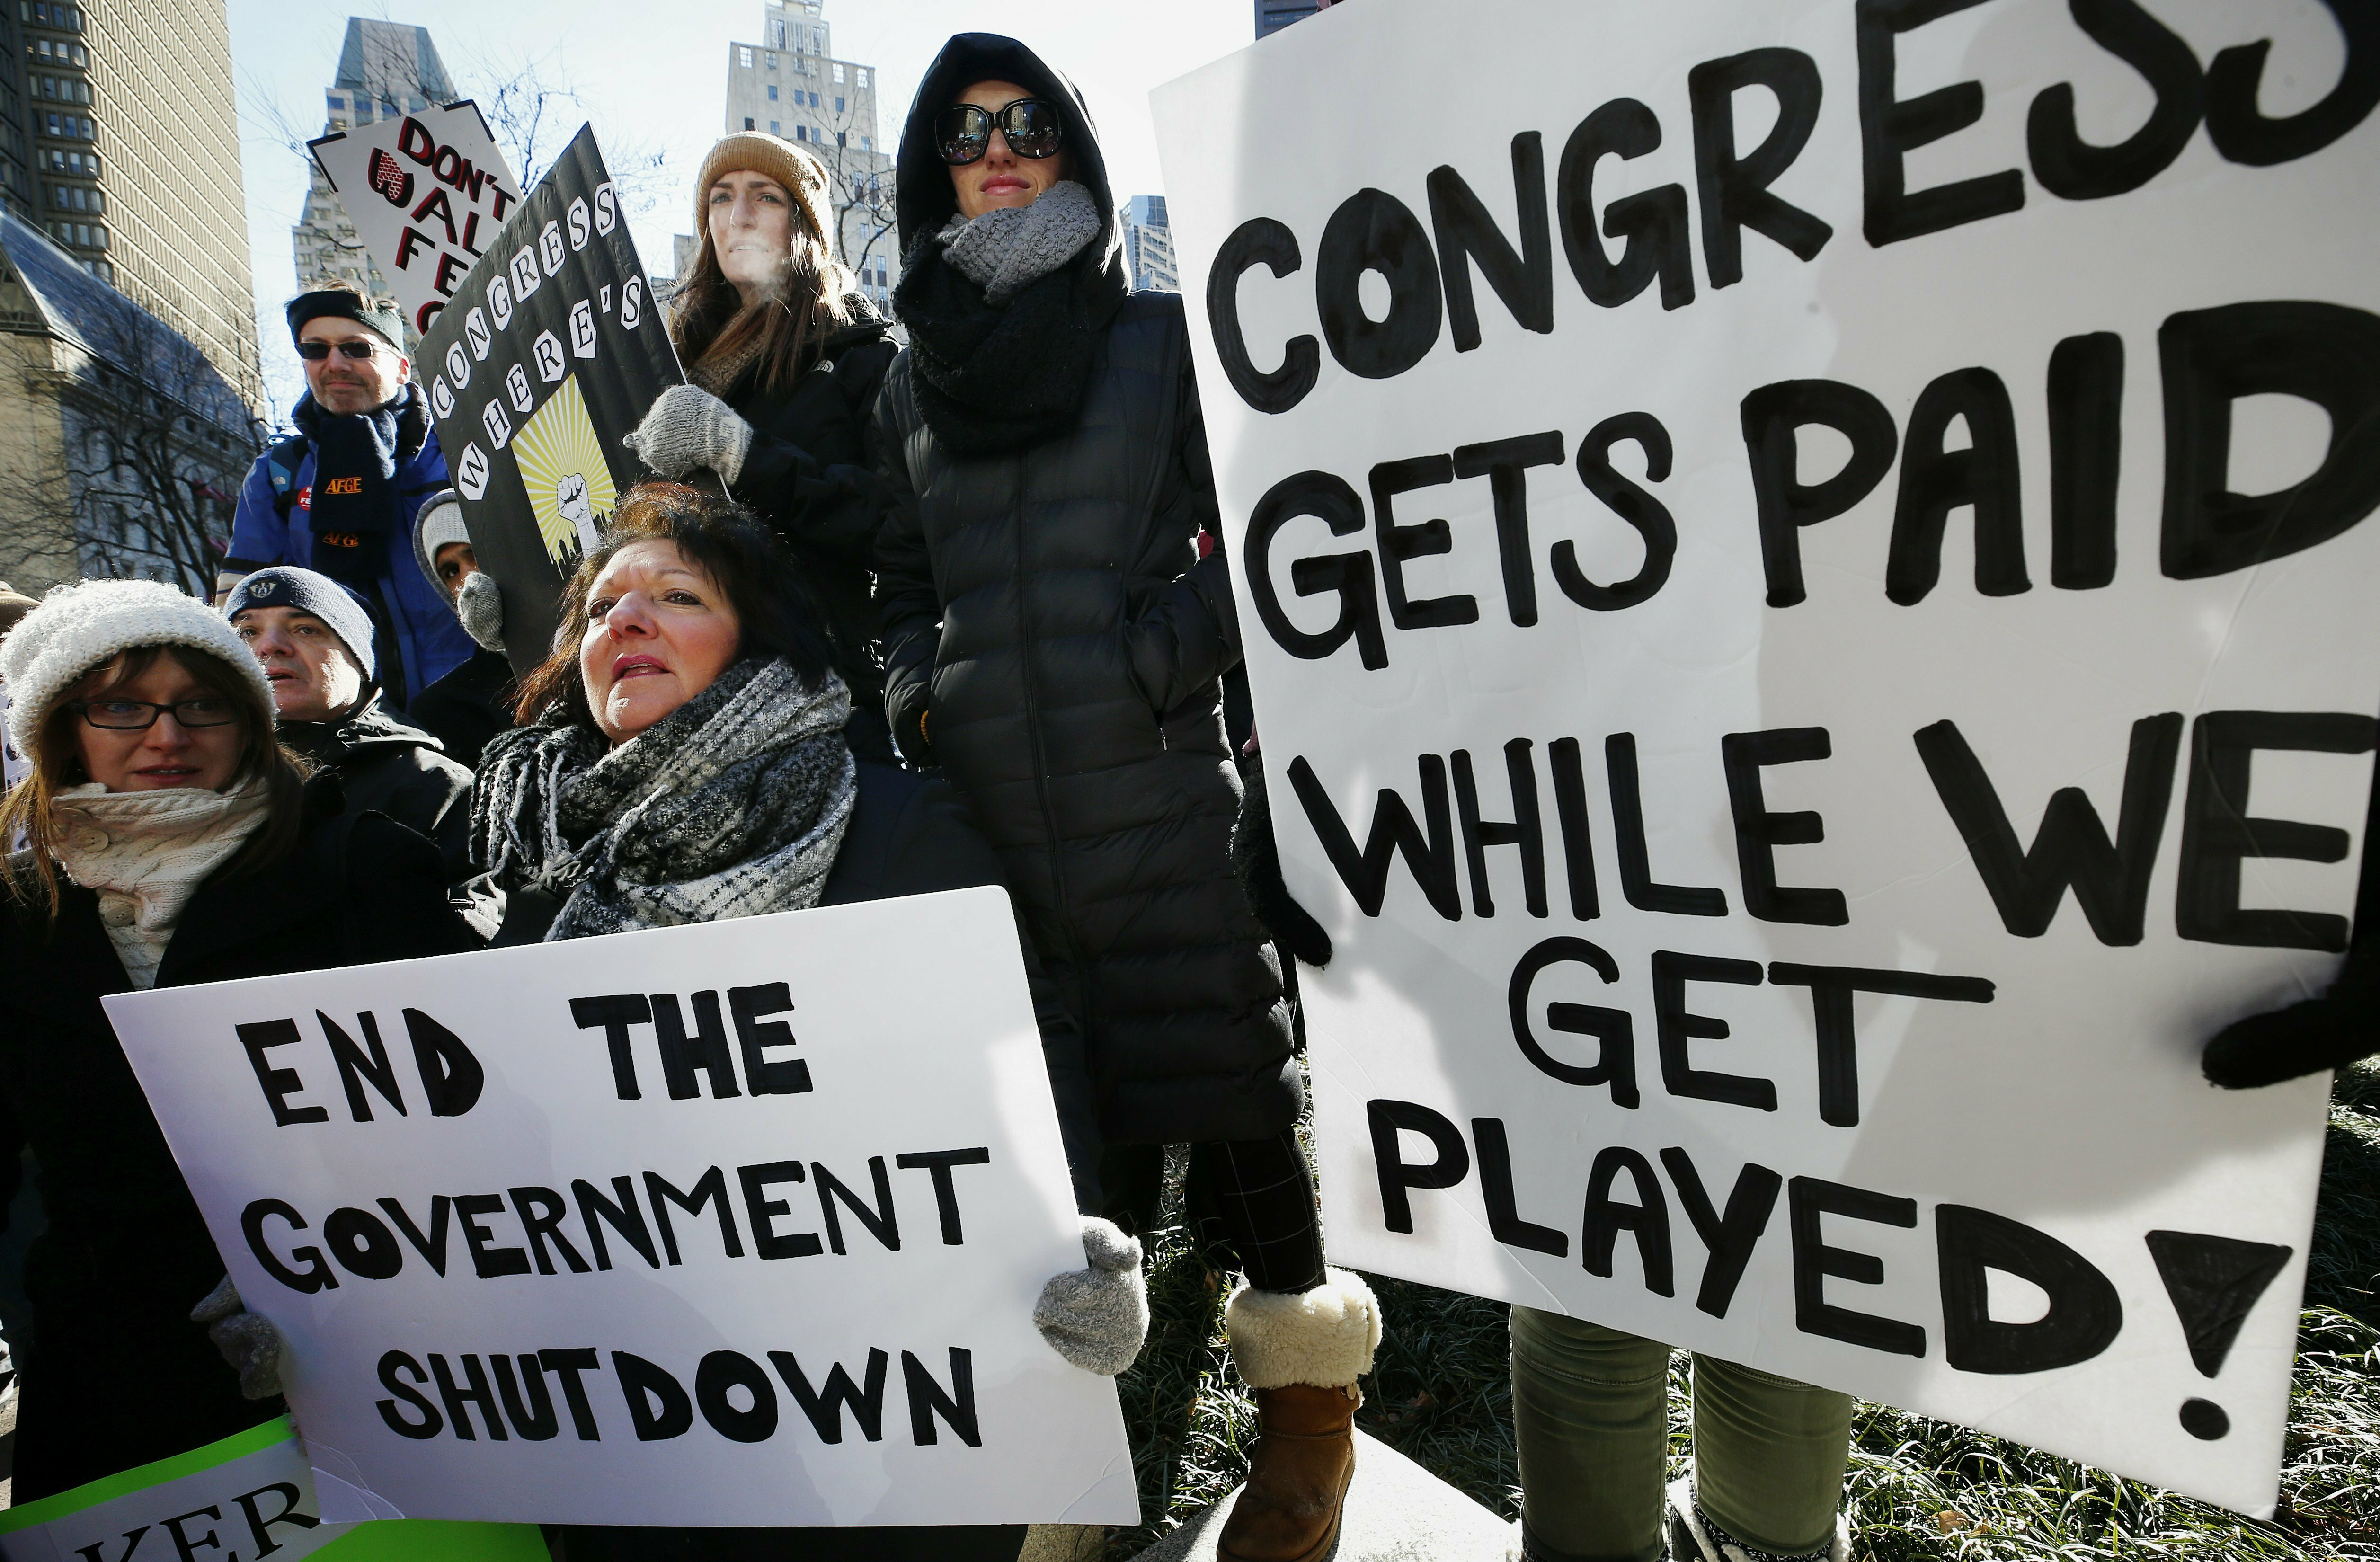 Federal workers get $0 pay stubs as shutdown drags on